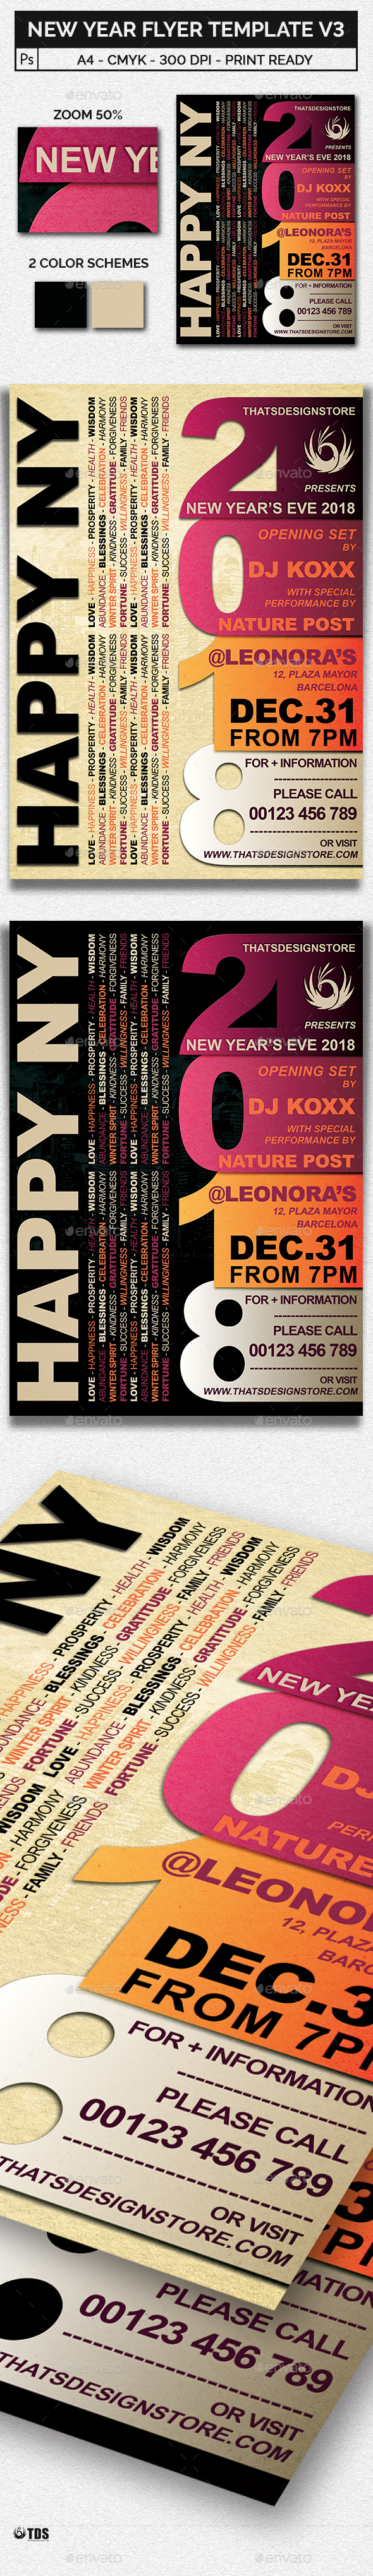 New Year Flyer Template V3 - Clubs & Parties Events